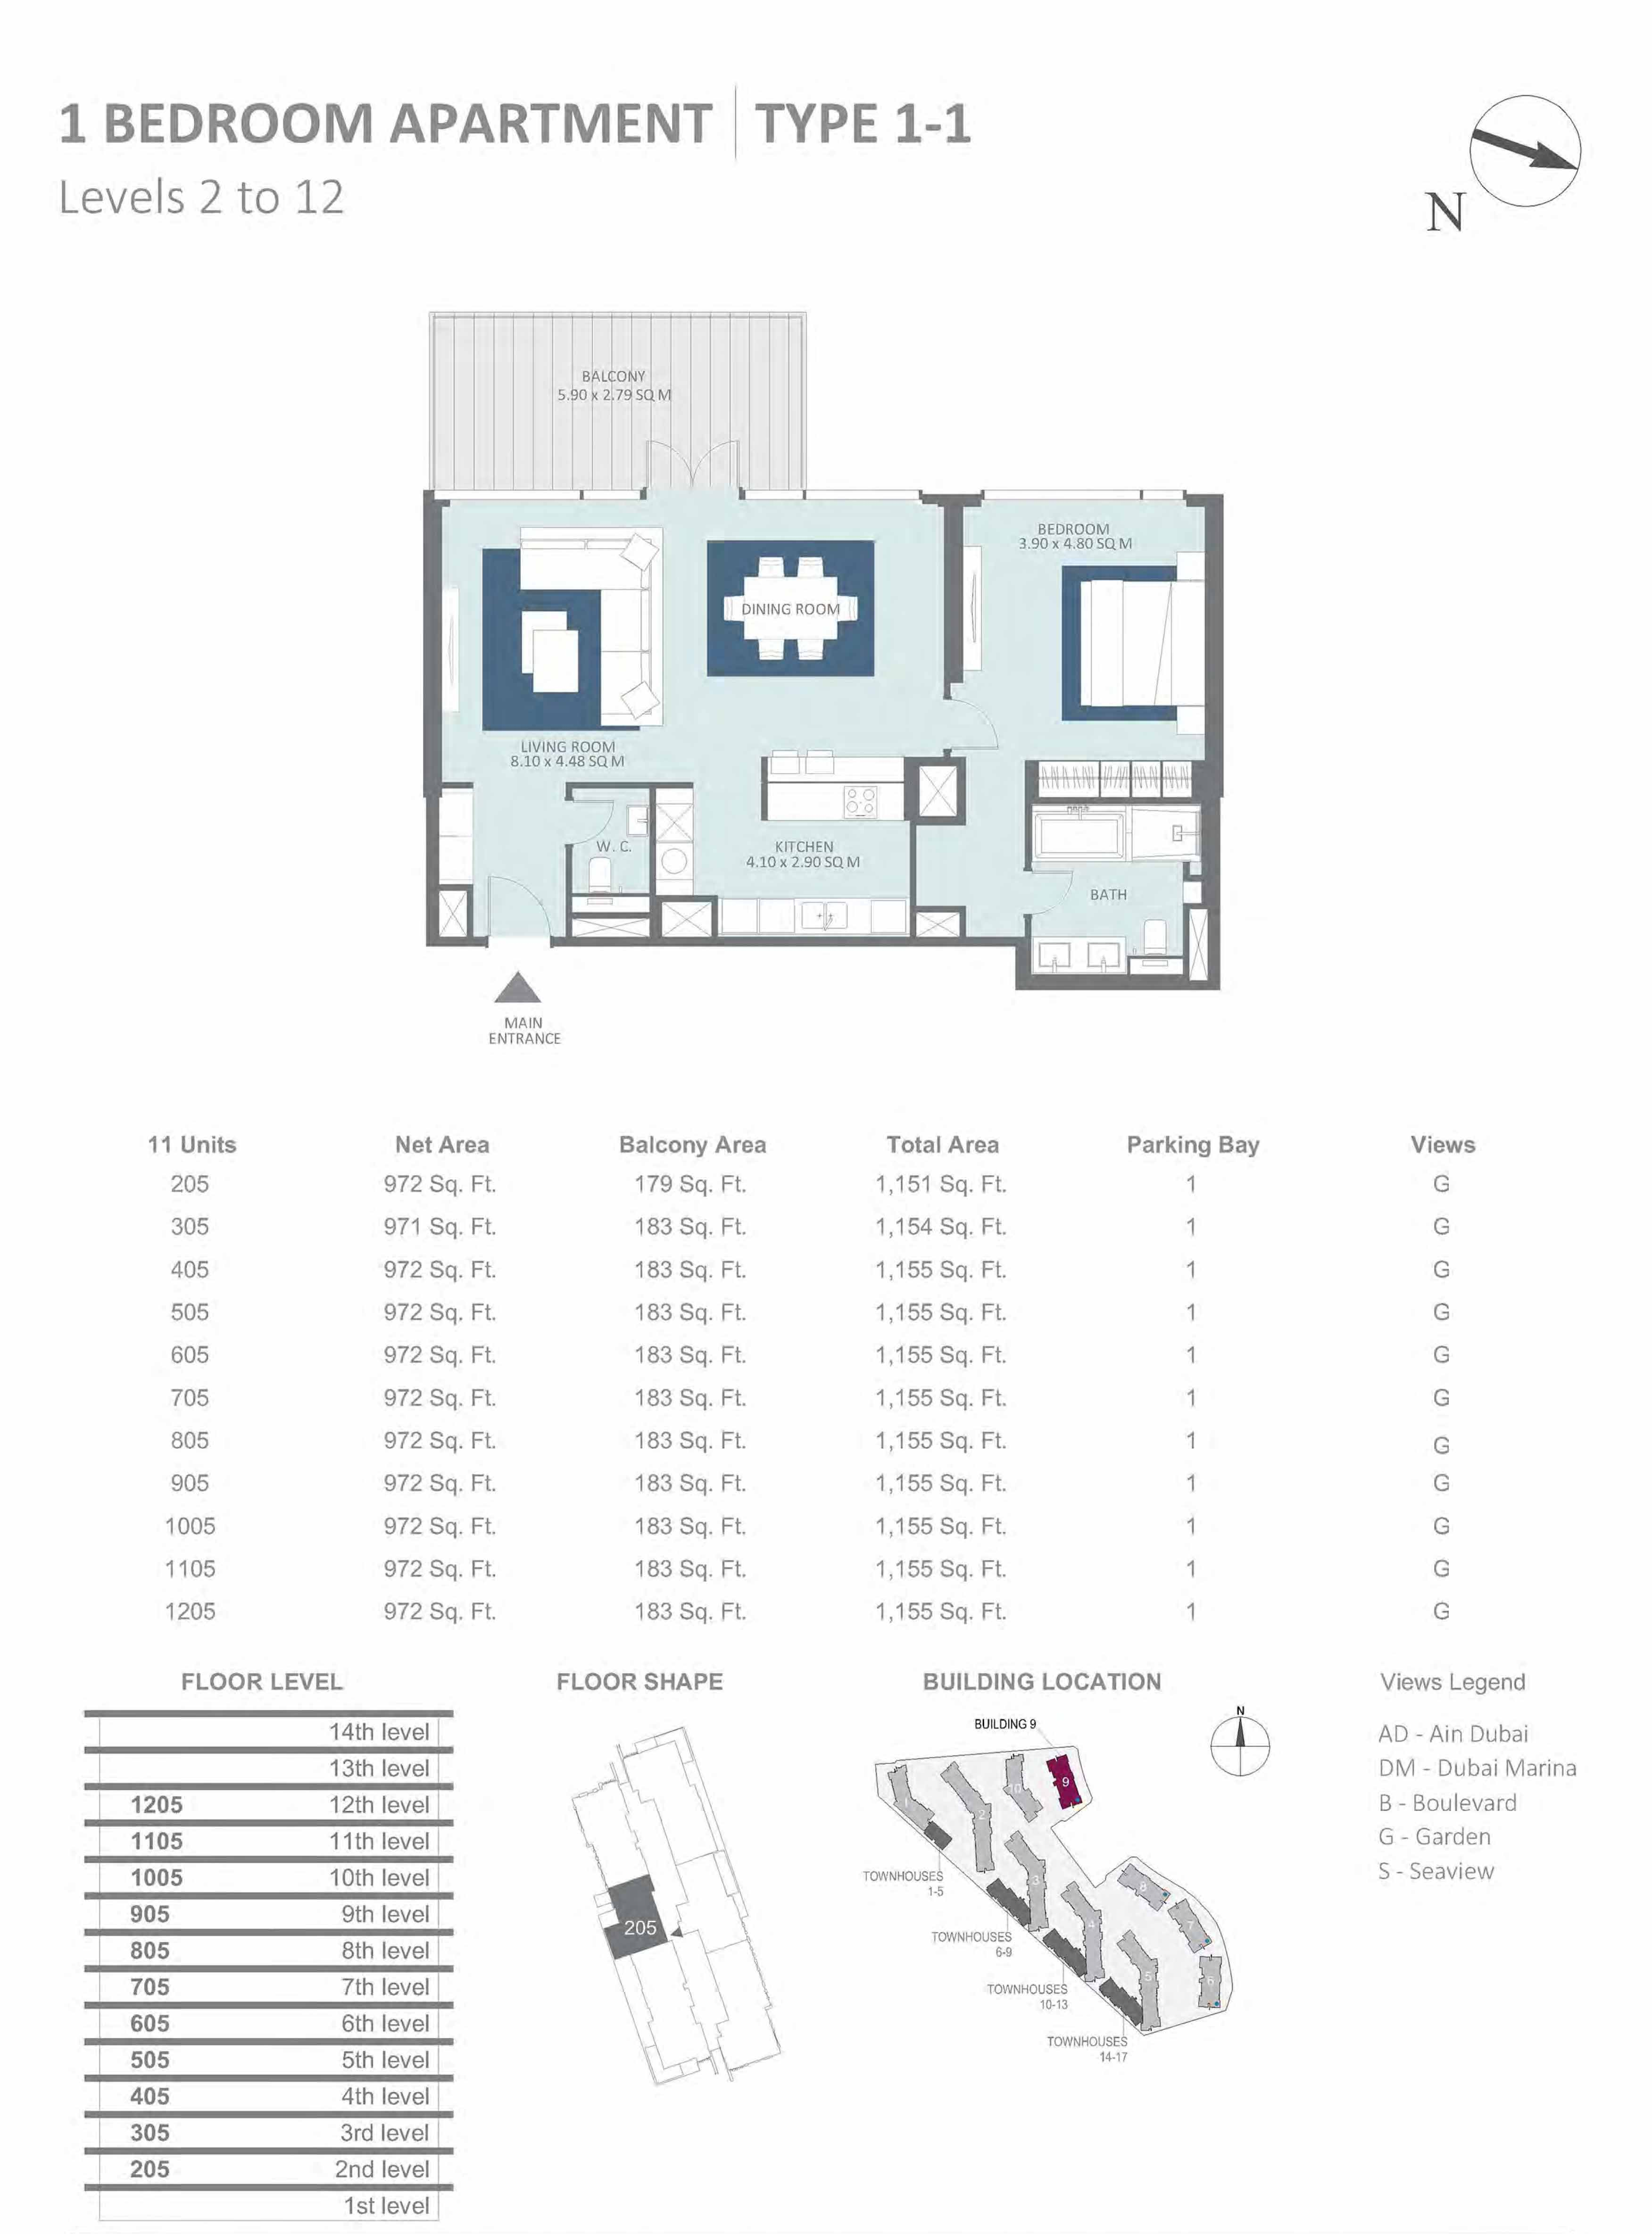 Building 9 - 1 Bedroom Type 1-1, Level 2 to 12 Size 1151 to 1155 sq.ft